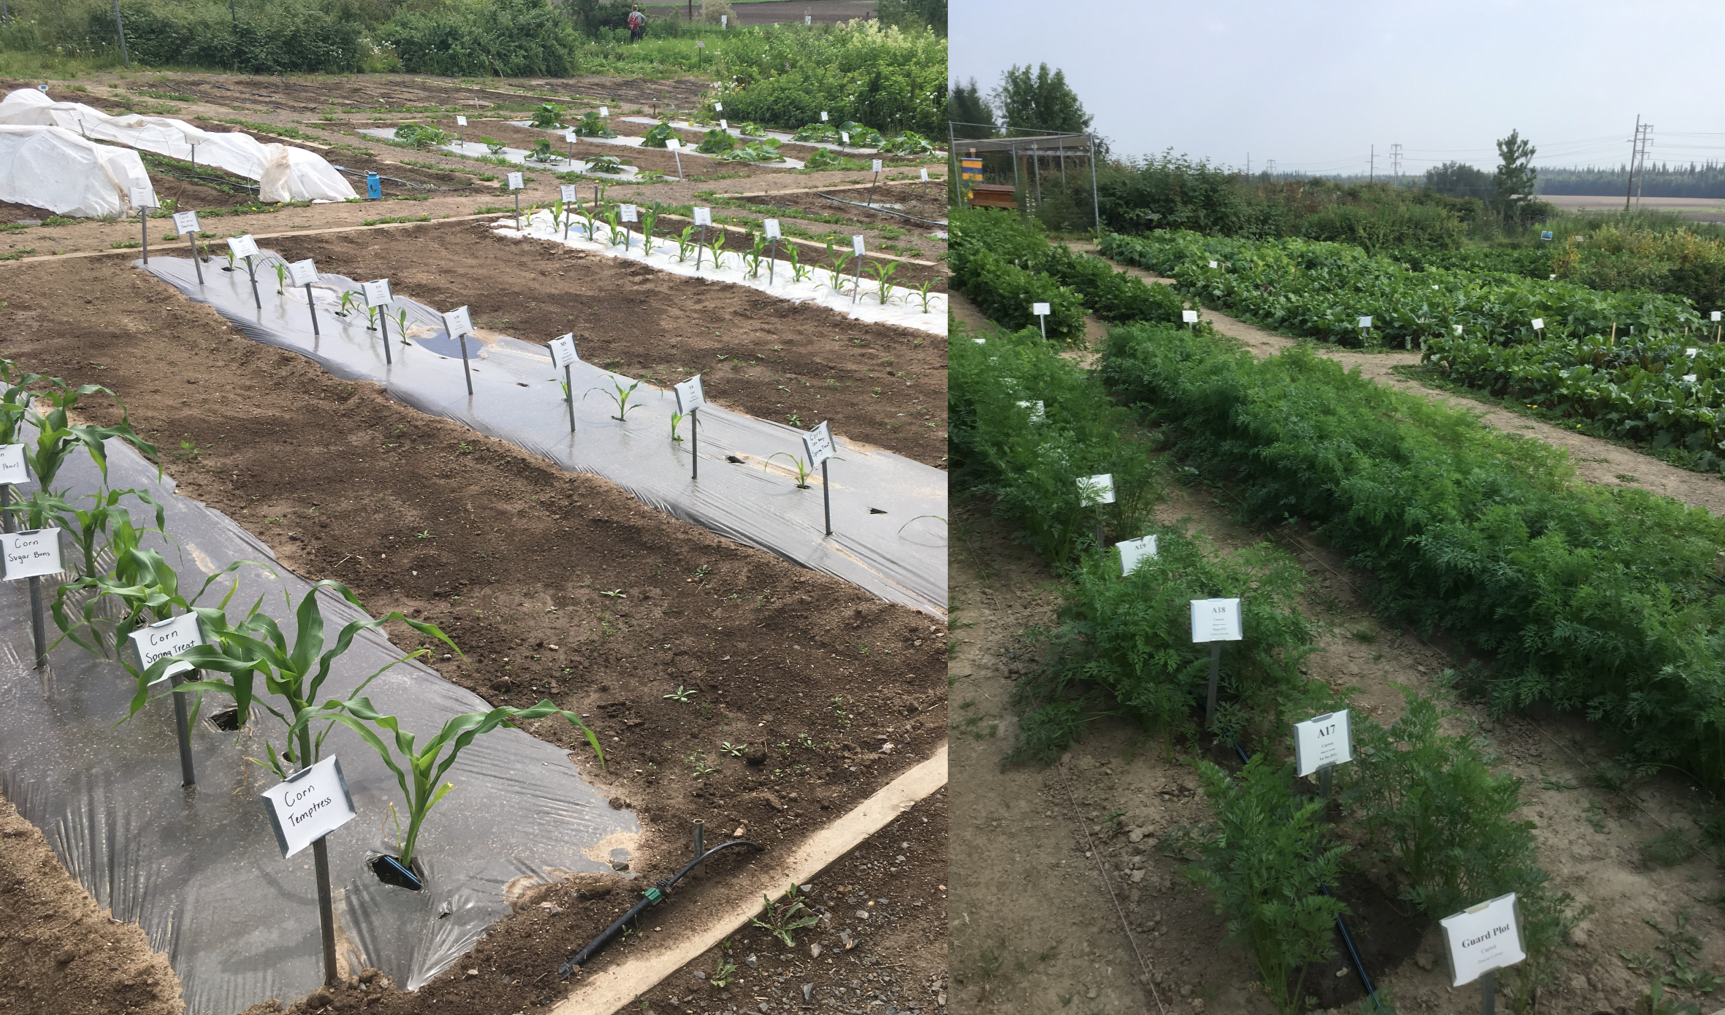 Several rows of corn and vegetable crops at the UAF Agriculture Forestry Experiment Station demonstrating vegetable variety trial research